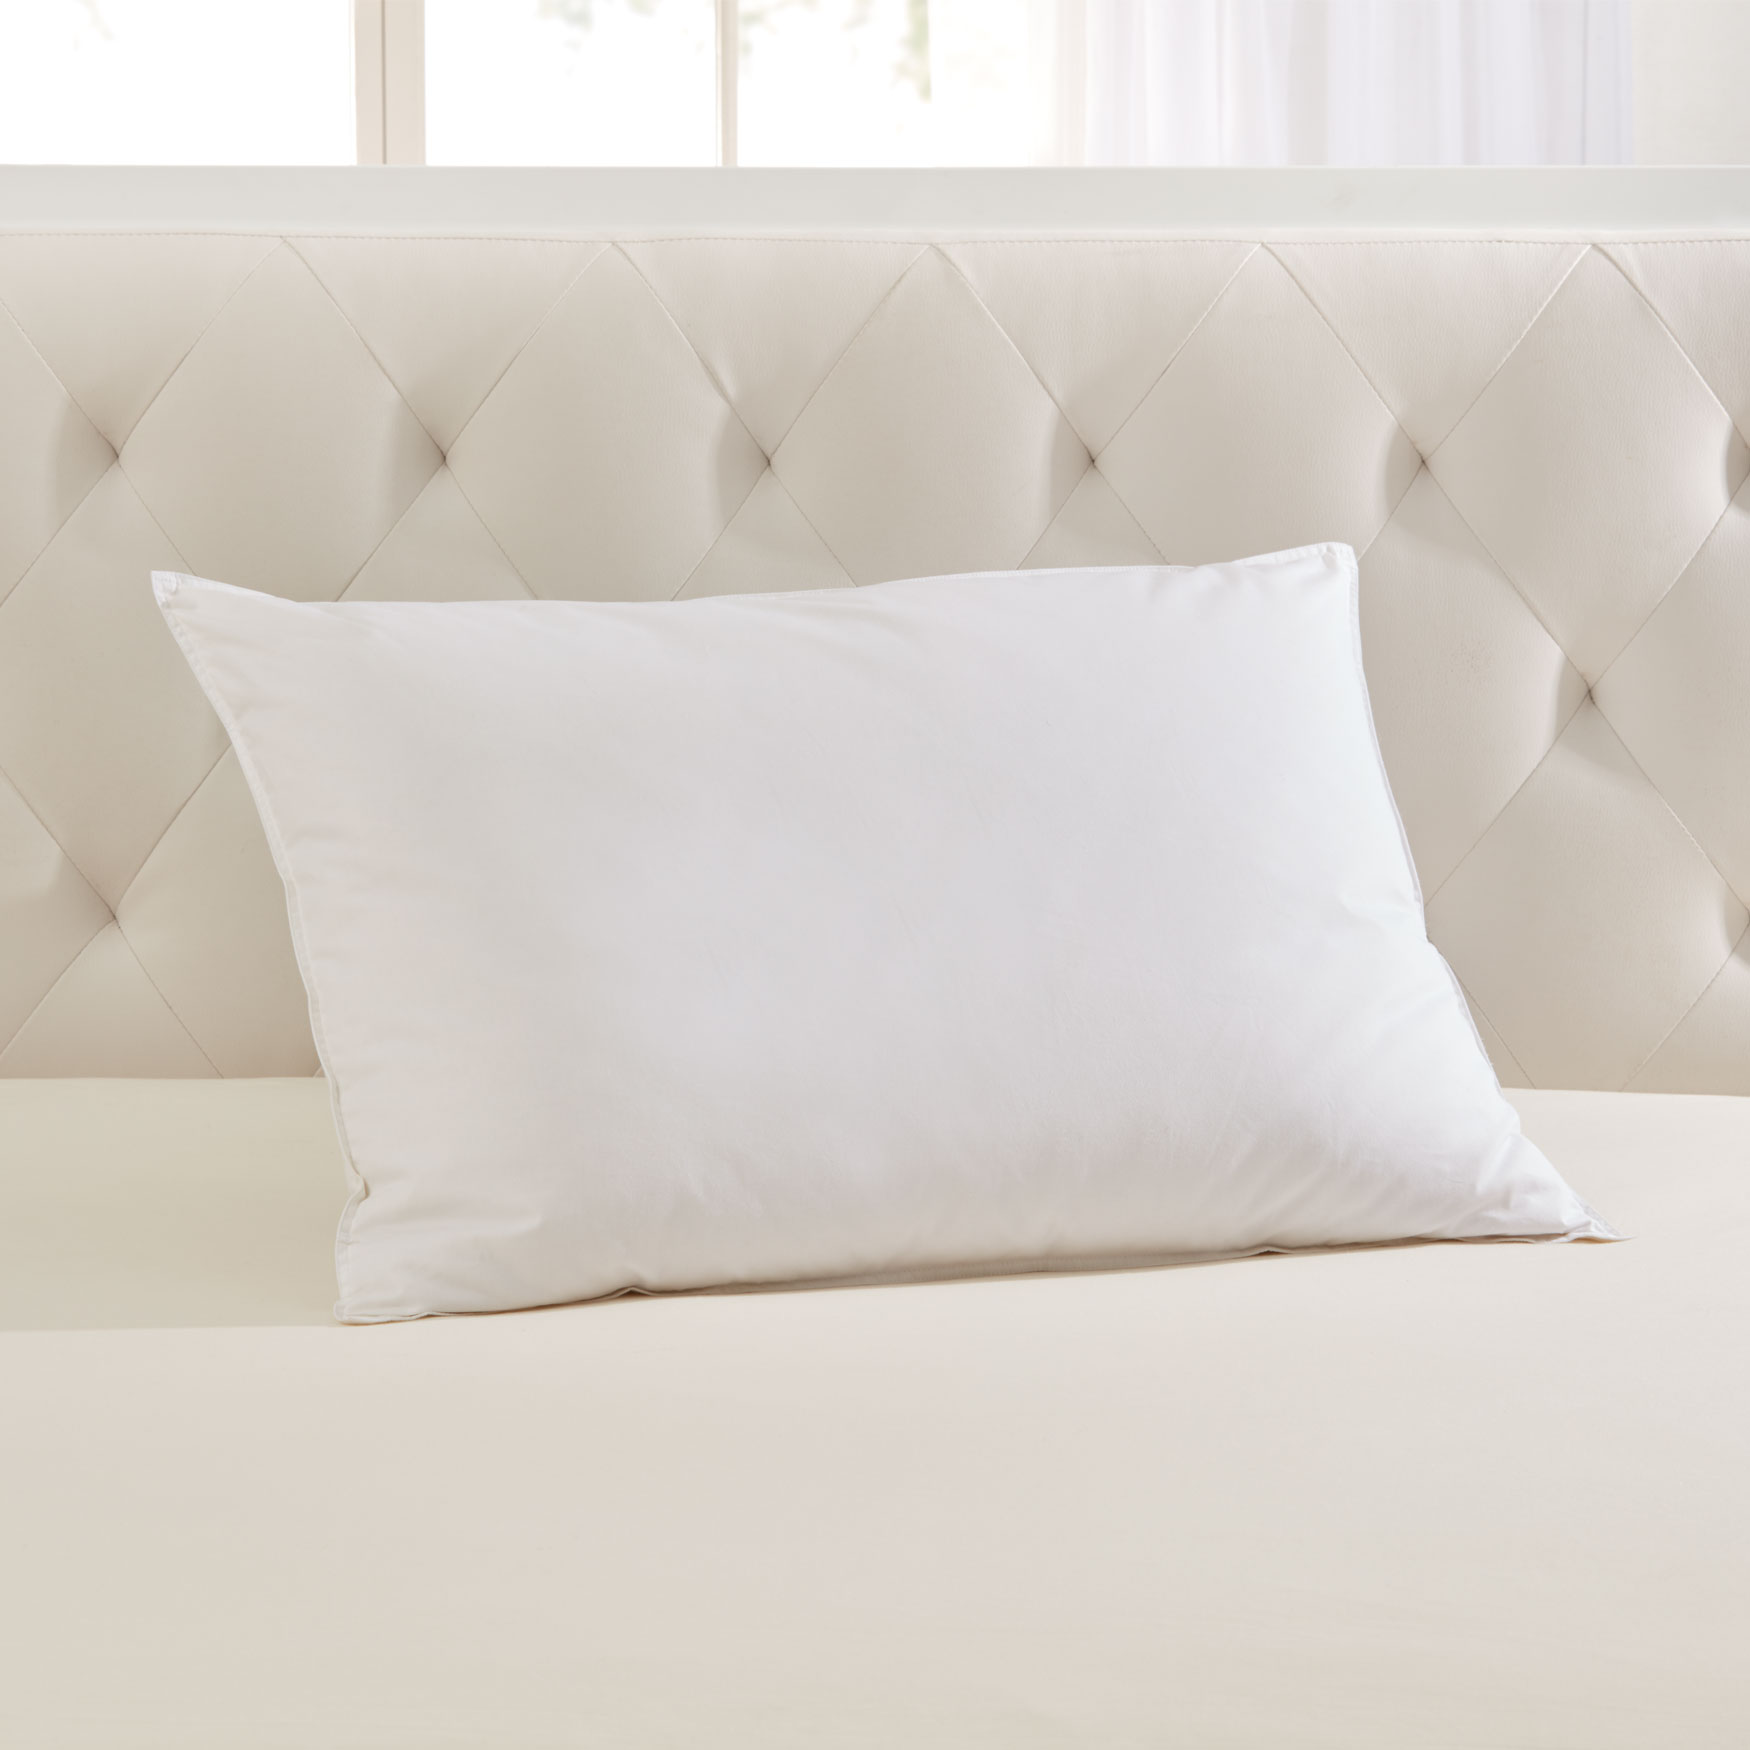 Soft Down-Feel Feather Pillow,